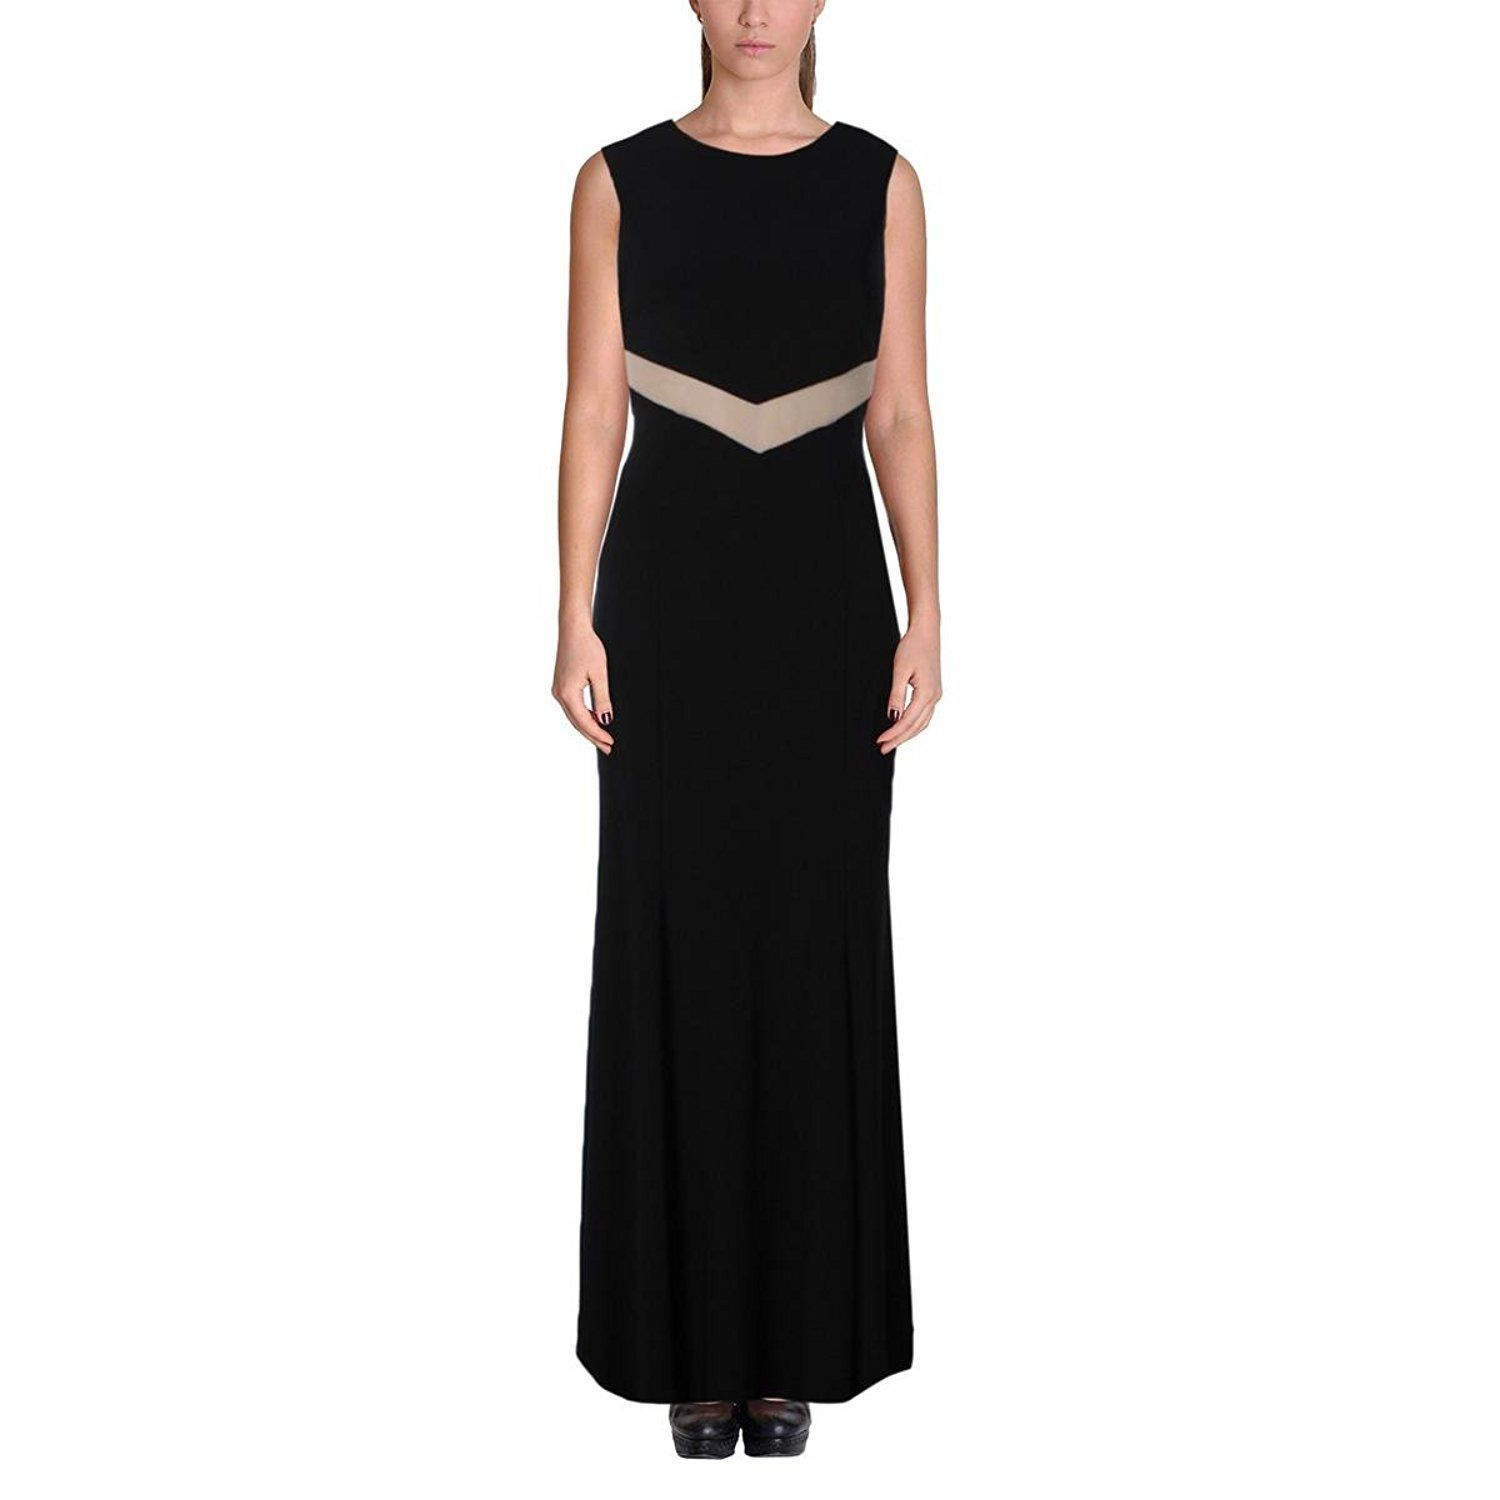 Primary image for 2465-1 Betsy & Adam Womens Sheer Trim Cut-Out Evening Dress Black 12